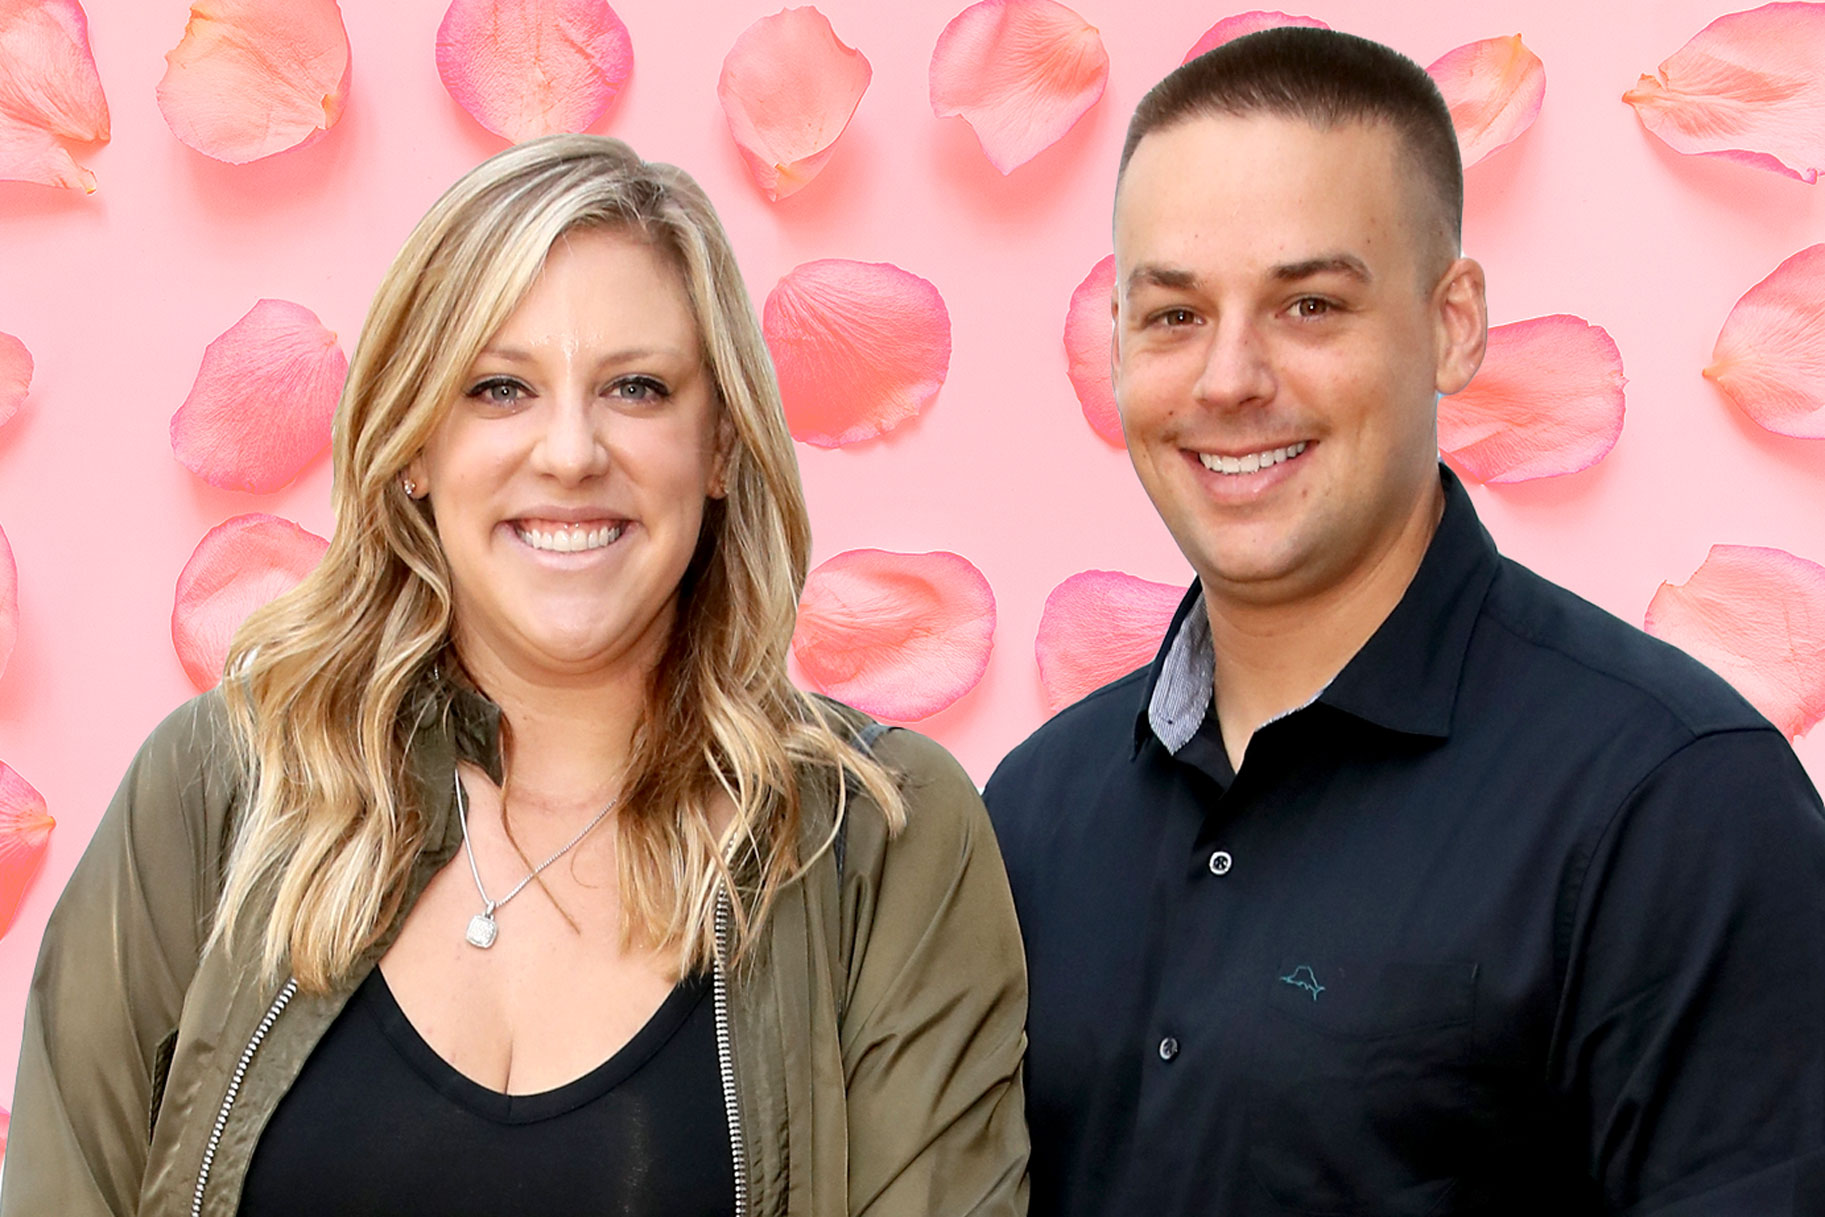 Briana Culberson, Ryan Culberson Wedding Pictures: Gender-Reveal Cake